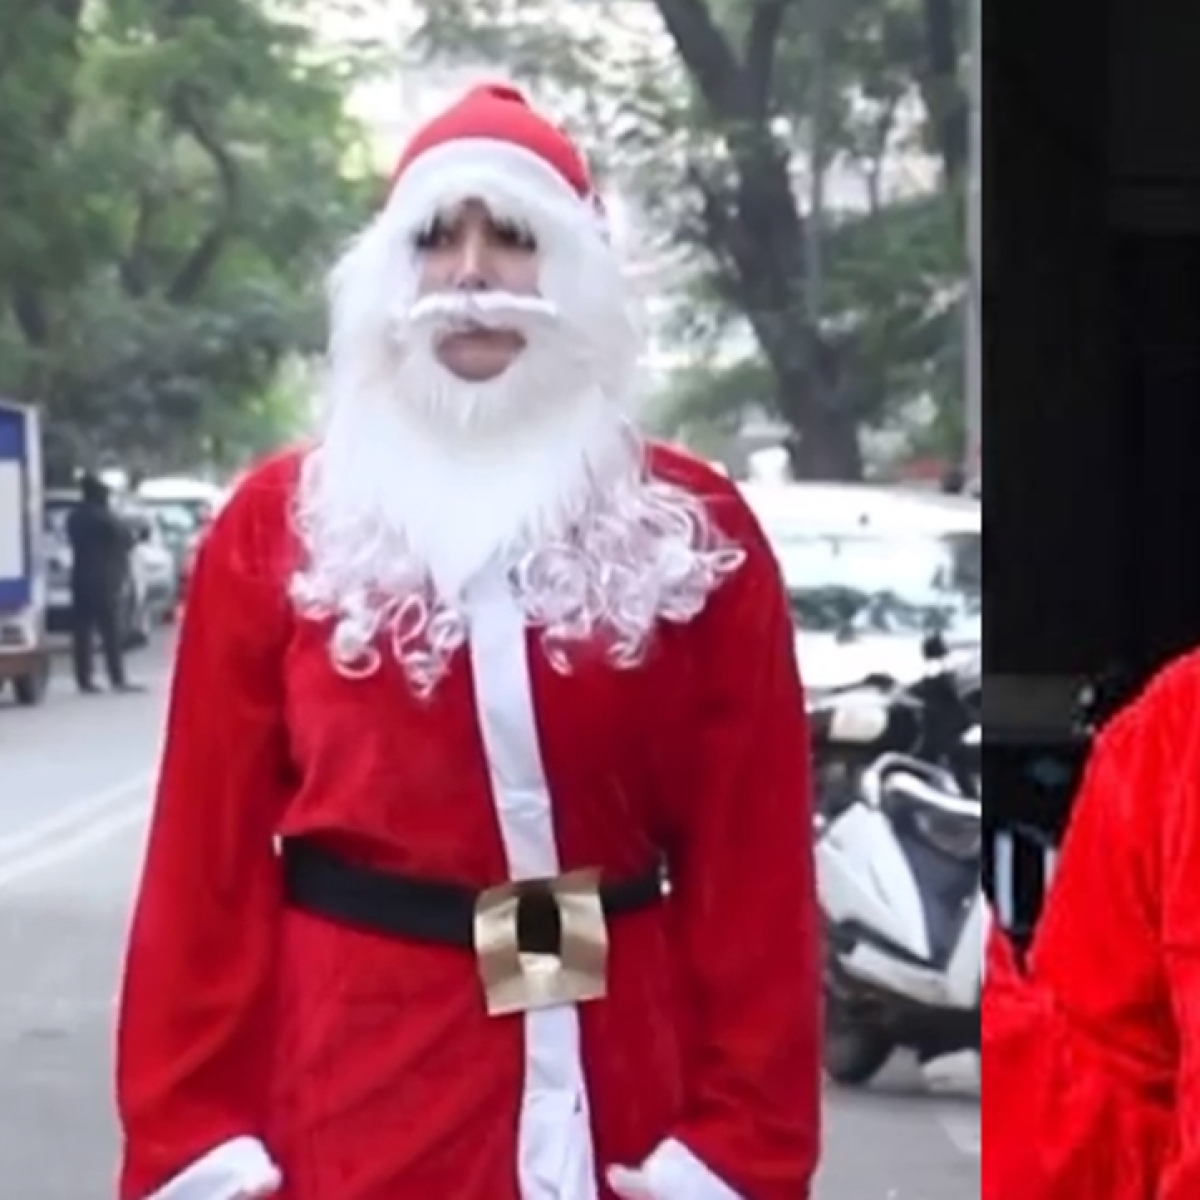 Watch: Zareen Khan spotted roaming on streets of Bandra dressed up as Santa Claus